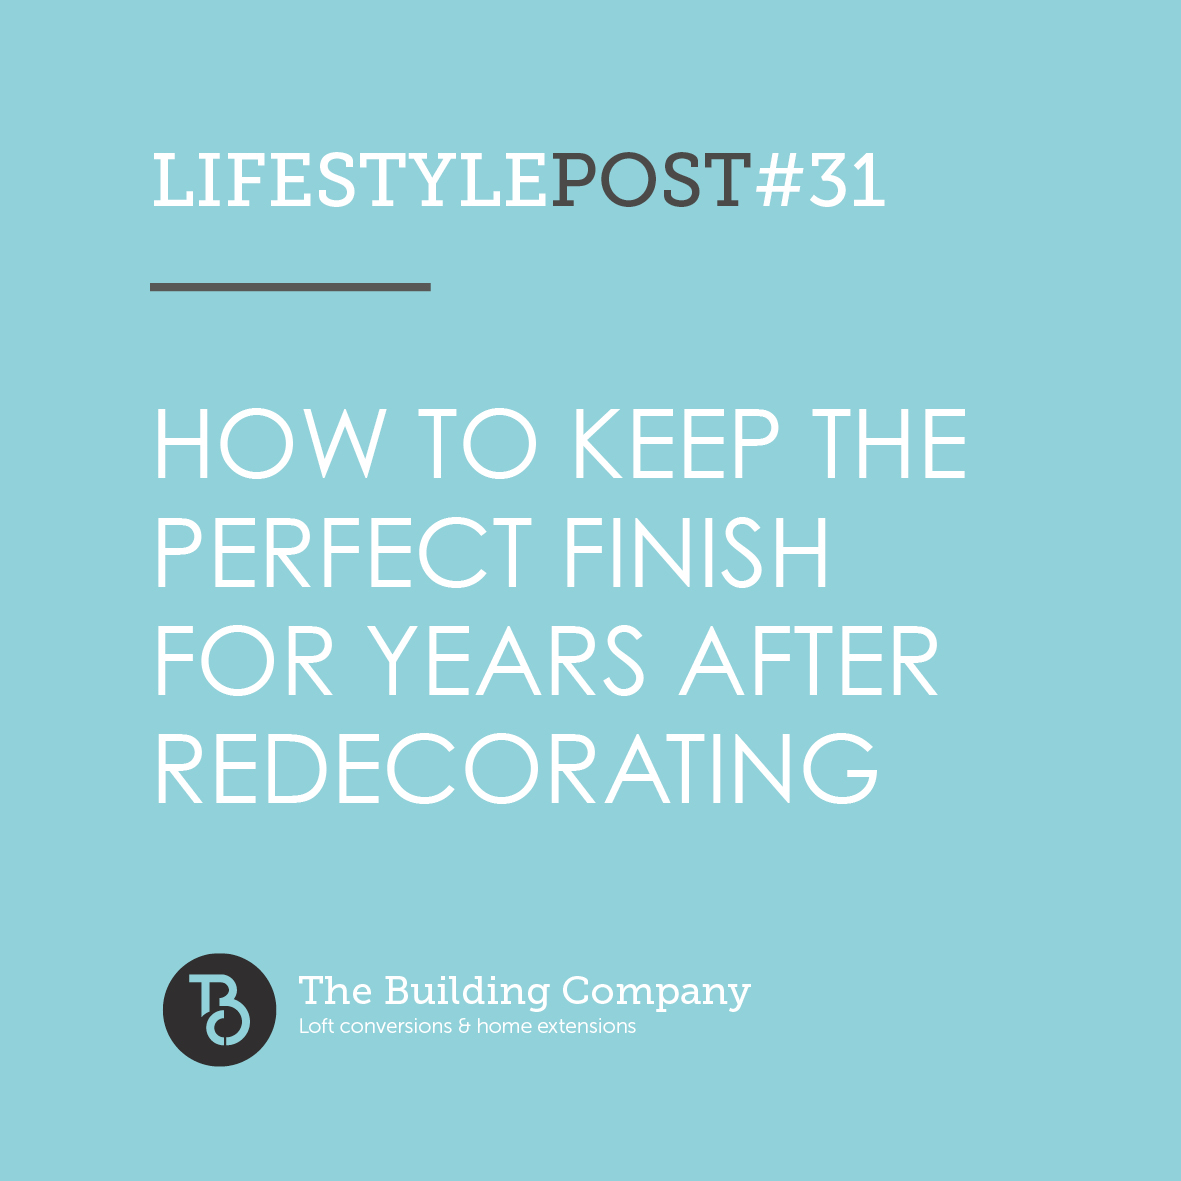 How to keep the perfect finish for years after redecorating in North London, Enfield and East Finchley